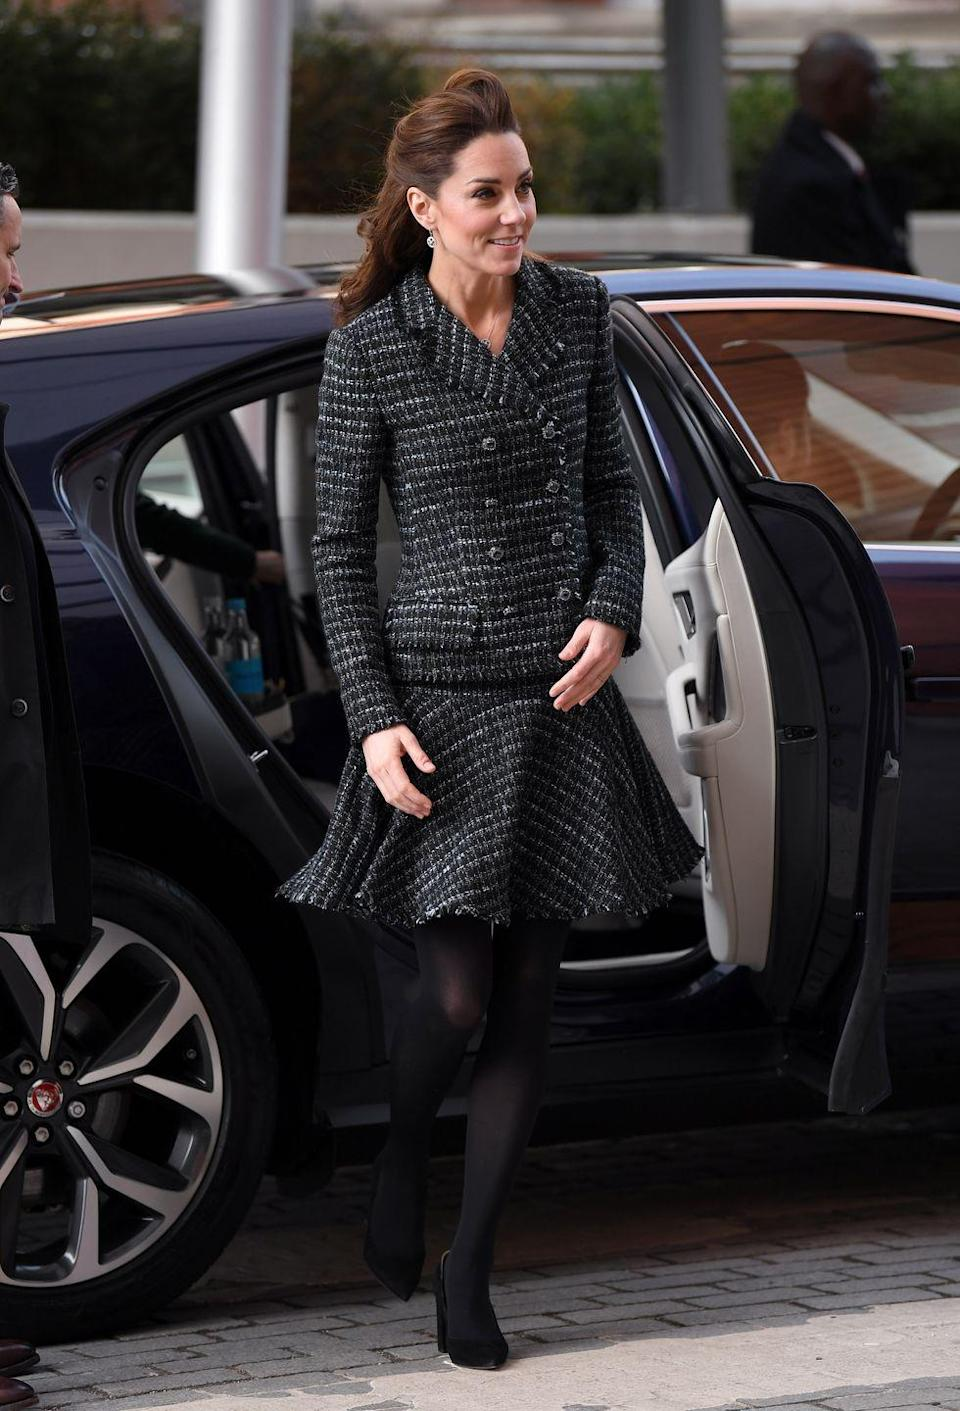 <p>On a visit to Evelina Children's Hospital to attend a National Portrait Gallery Workshop, Kate re-wore a black tweed Dolce & Gabbana skirt suit. <br></p>